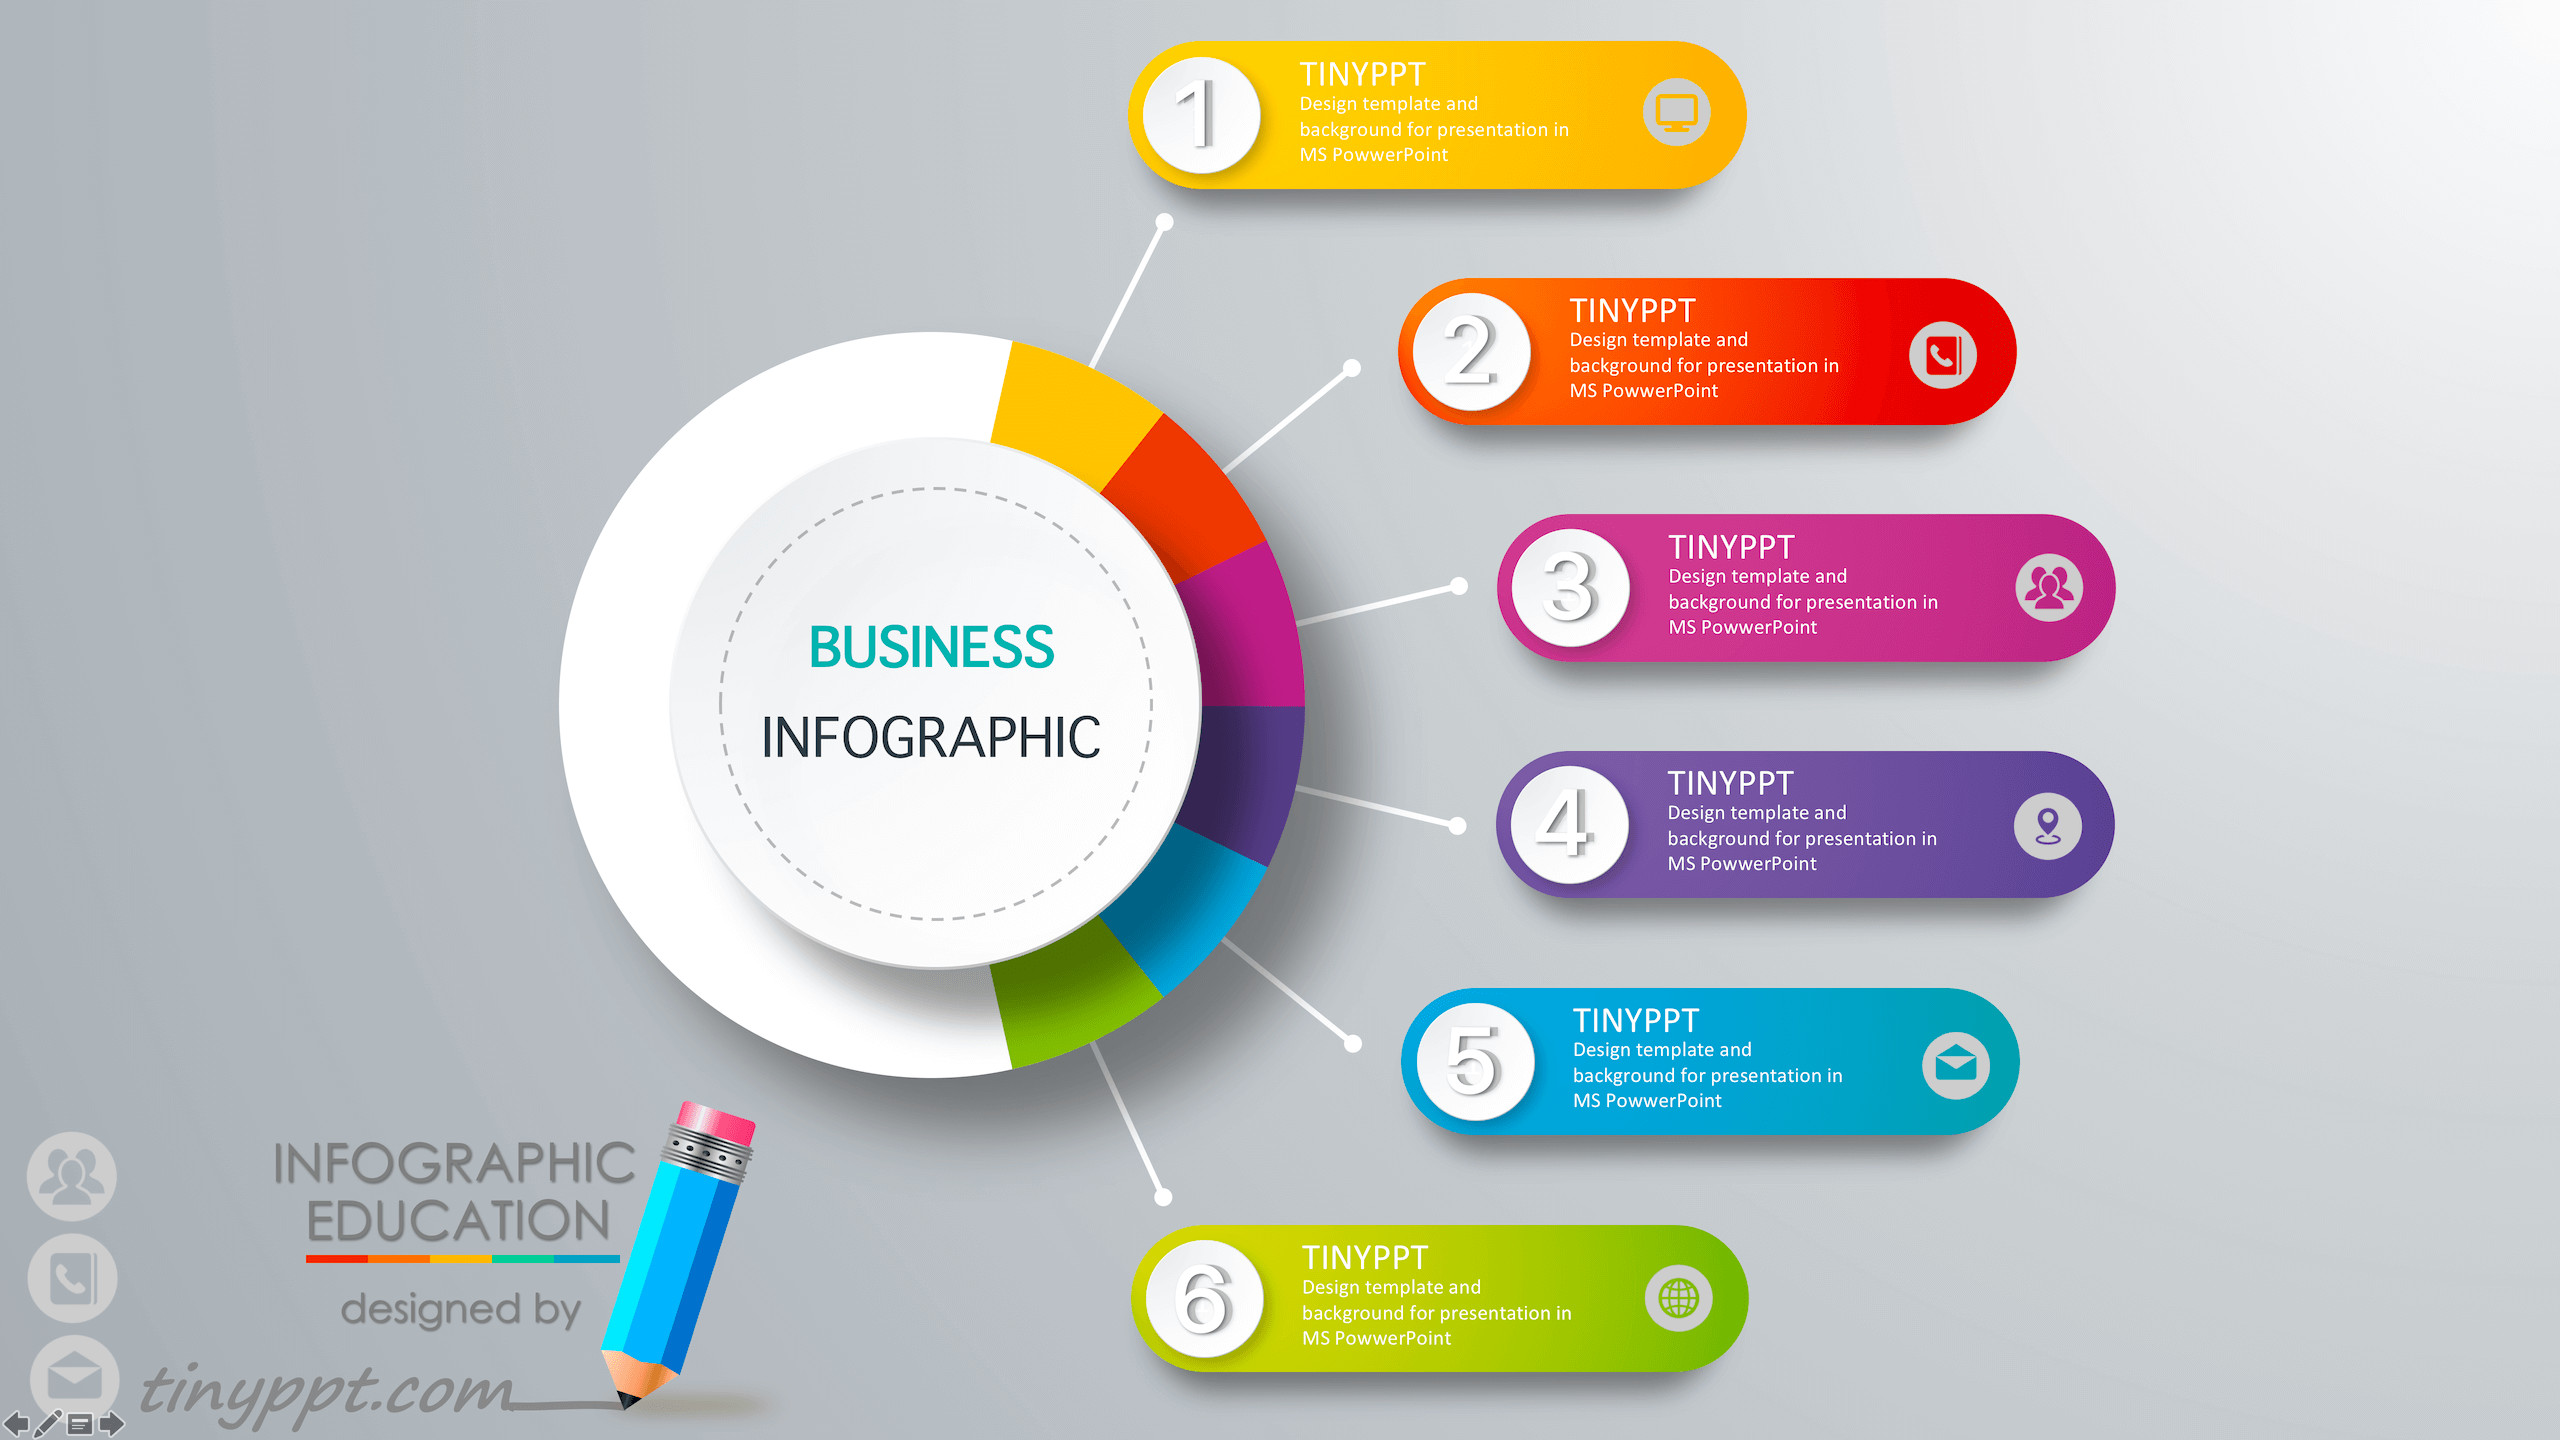 Free Templates for Powerpoint Free Powerpoint Templates Timeline Infographic